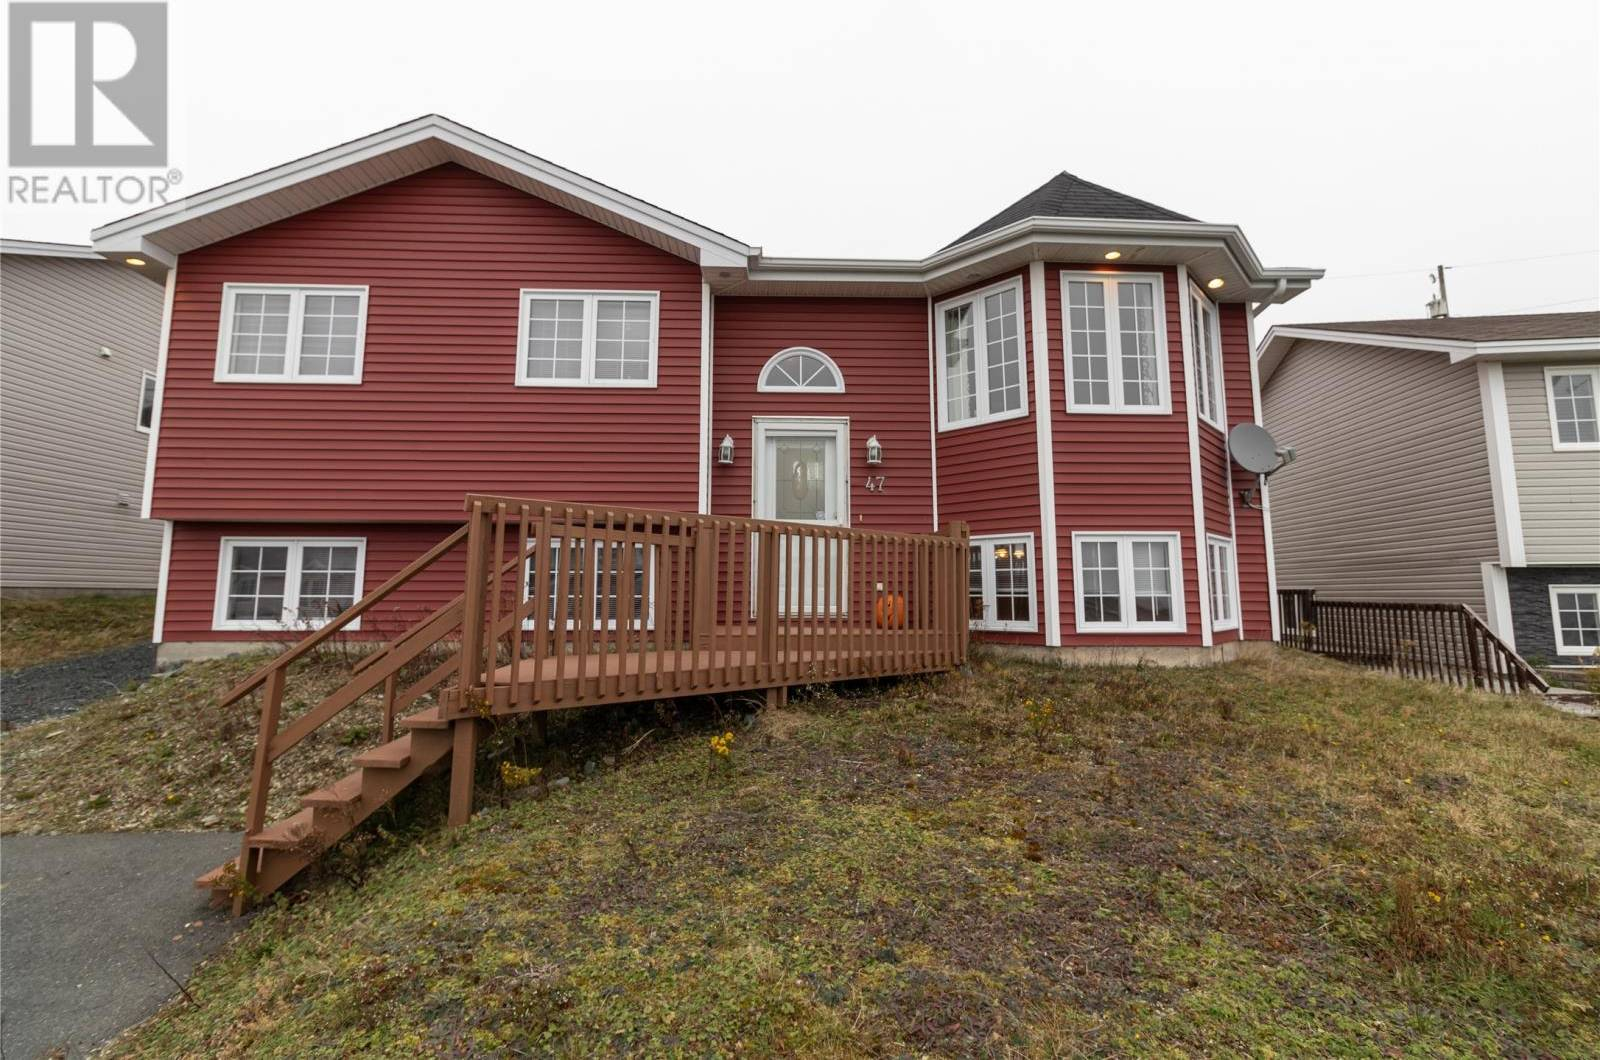 House for sale at 47 Dunluce Cres Mt. Pearl Newfoundland - MLS: 1207124